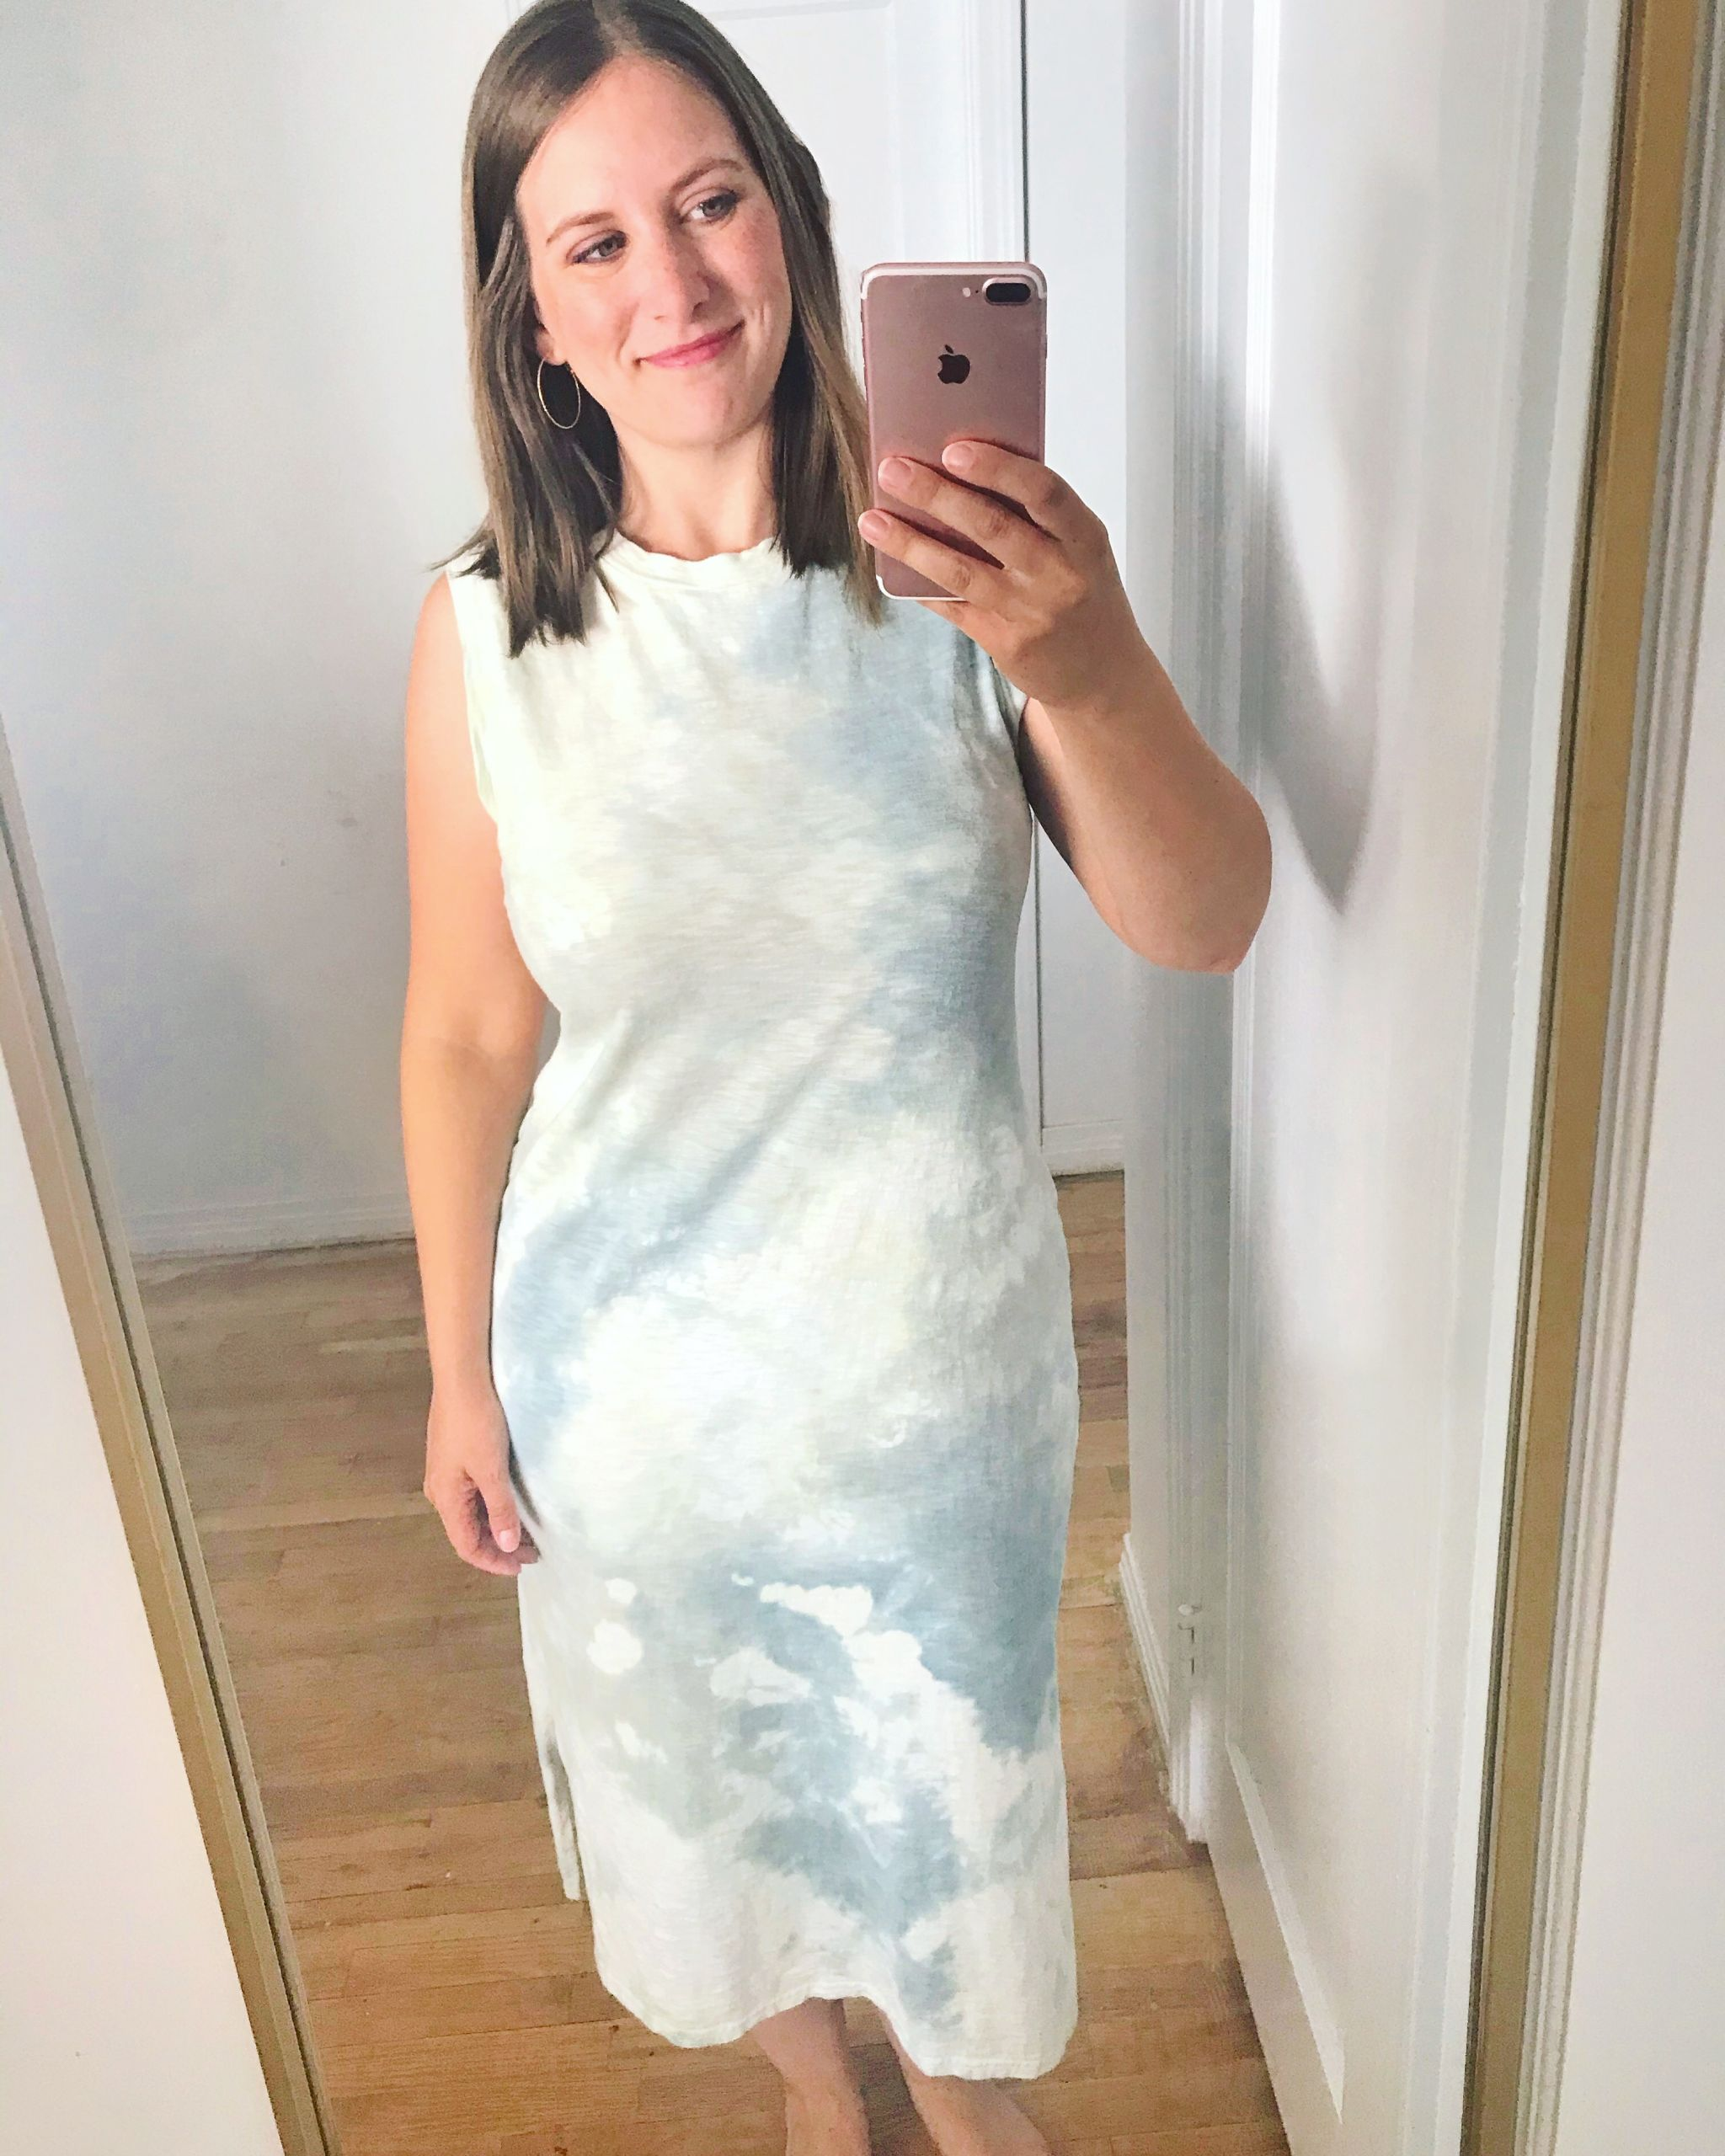 blue tie dye dress from Target - affordable fashion buys